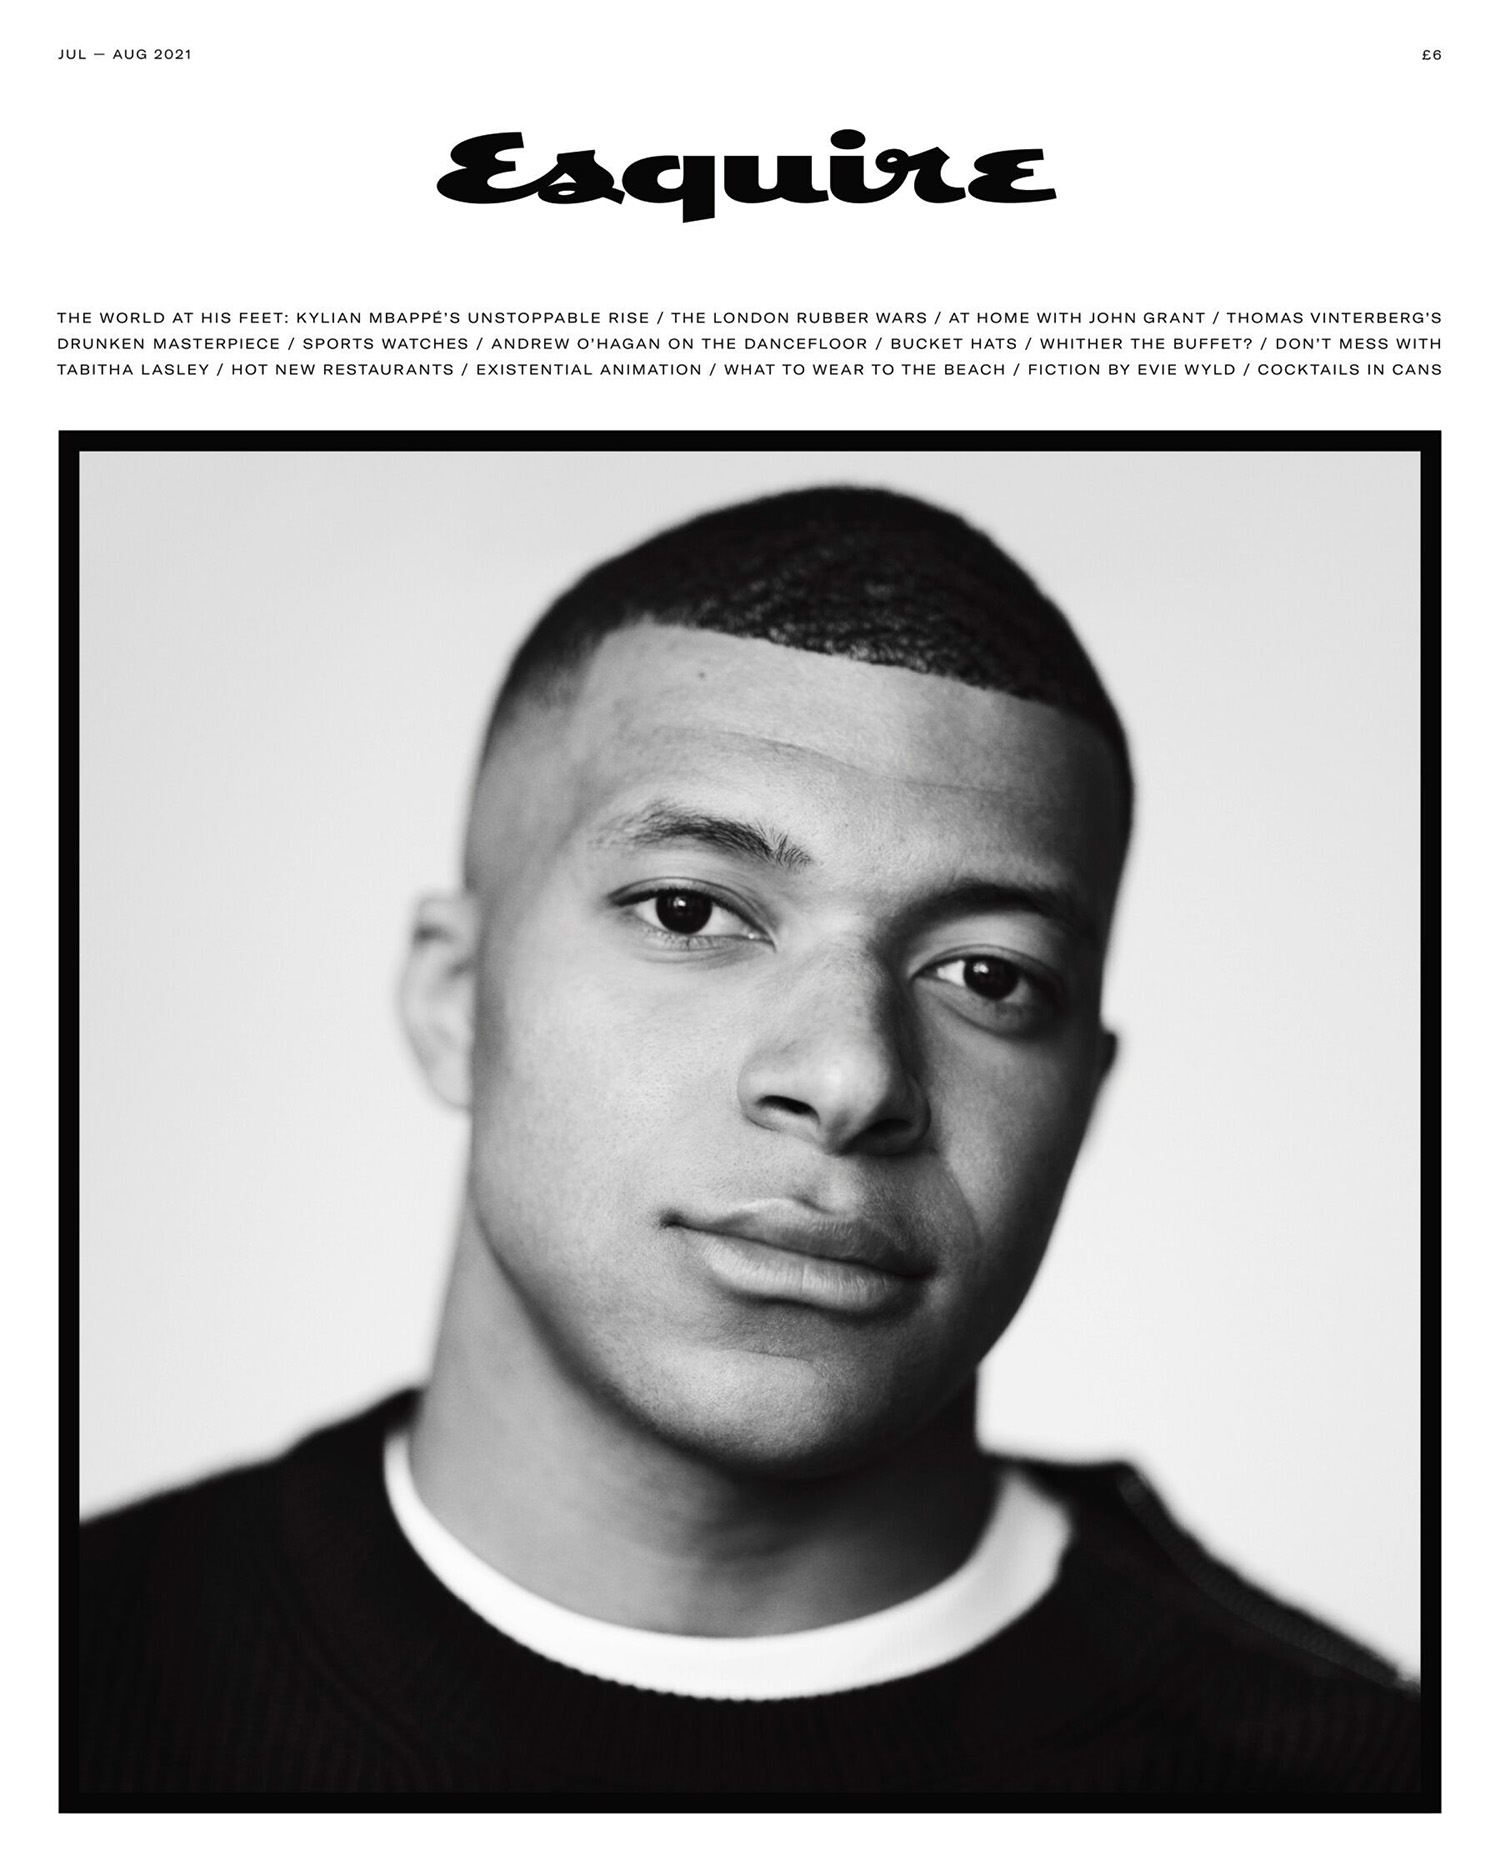 Kylian Mbappé covers Esquire UK July August 2021 by Nathaniel Goldberg